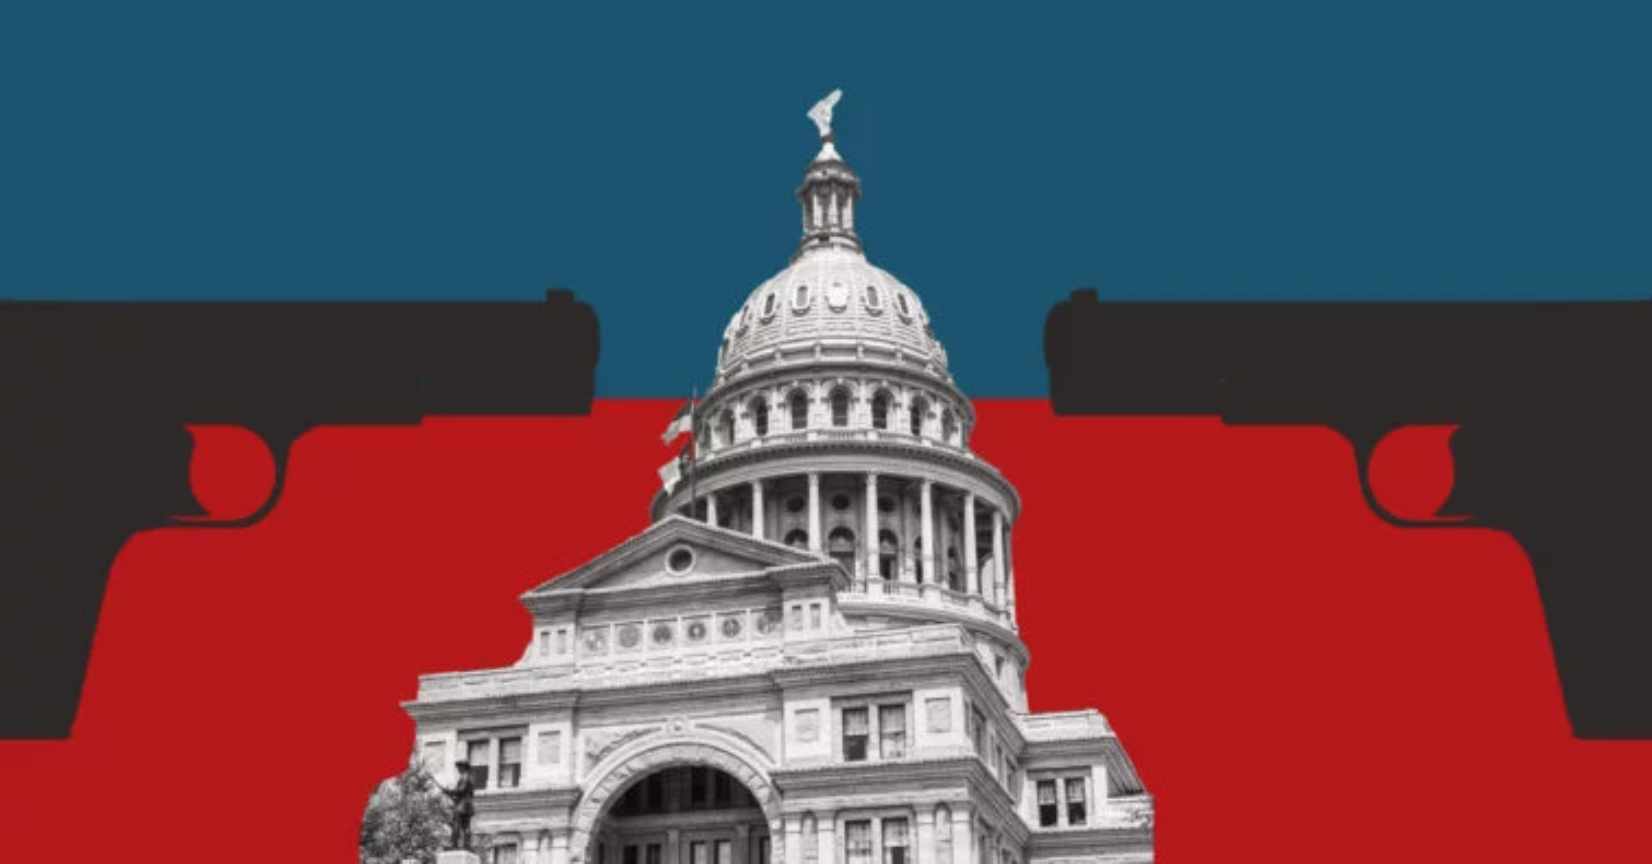 With Accidental Gun Deaths on the Rise, Some Texas Lawmakers Won't Even Support a Gun Safety Public Awareness Campaign